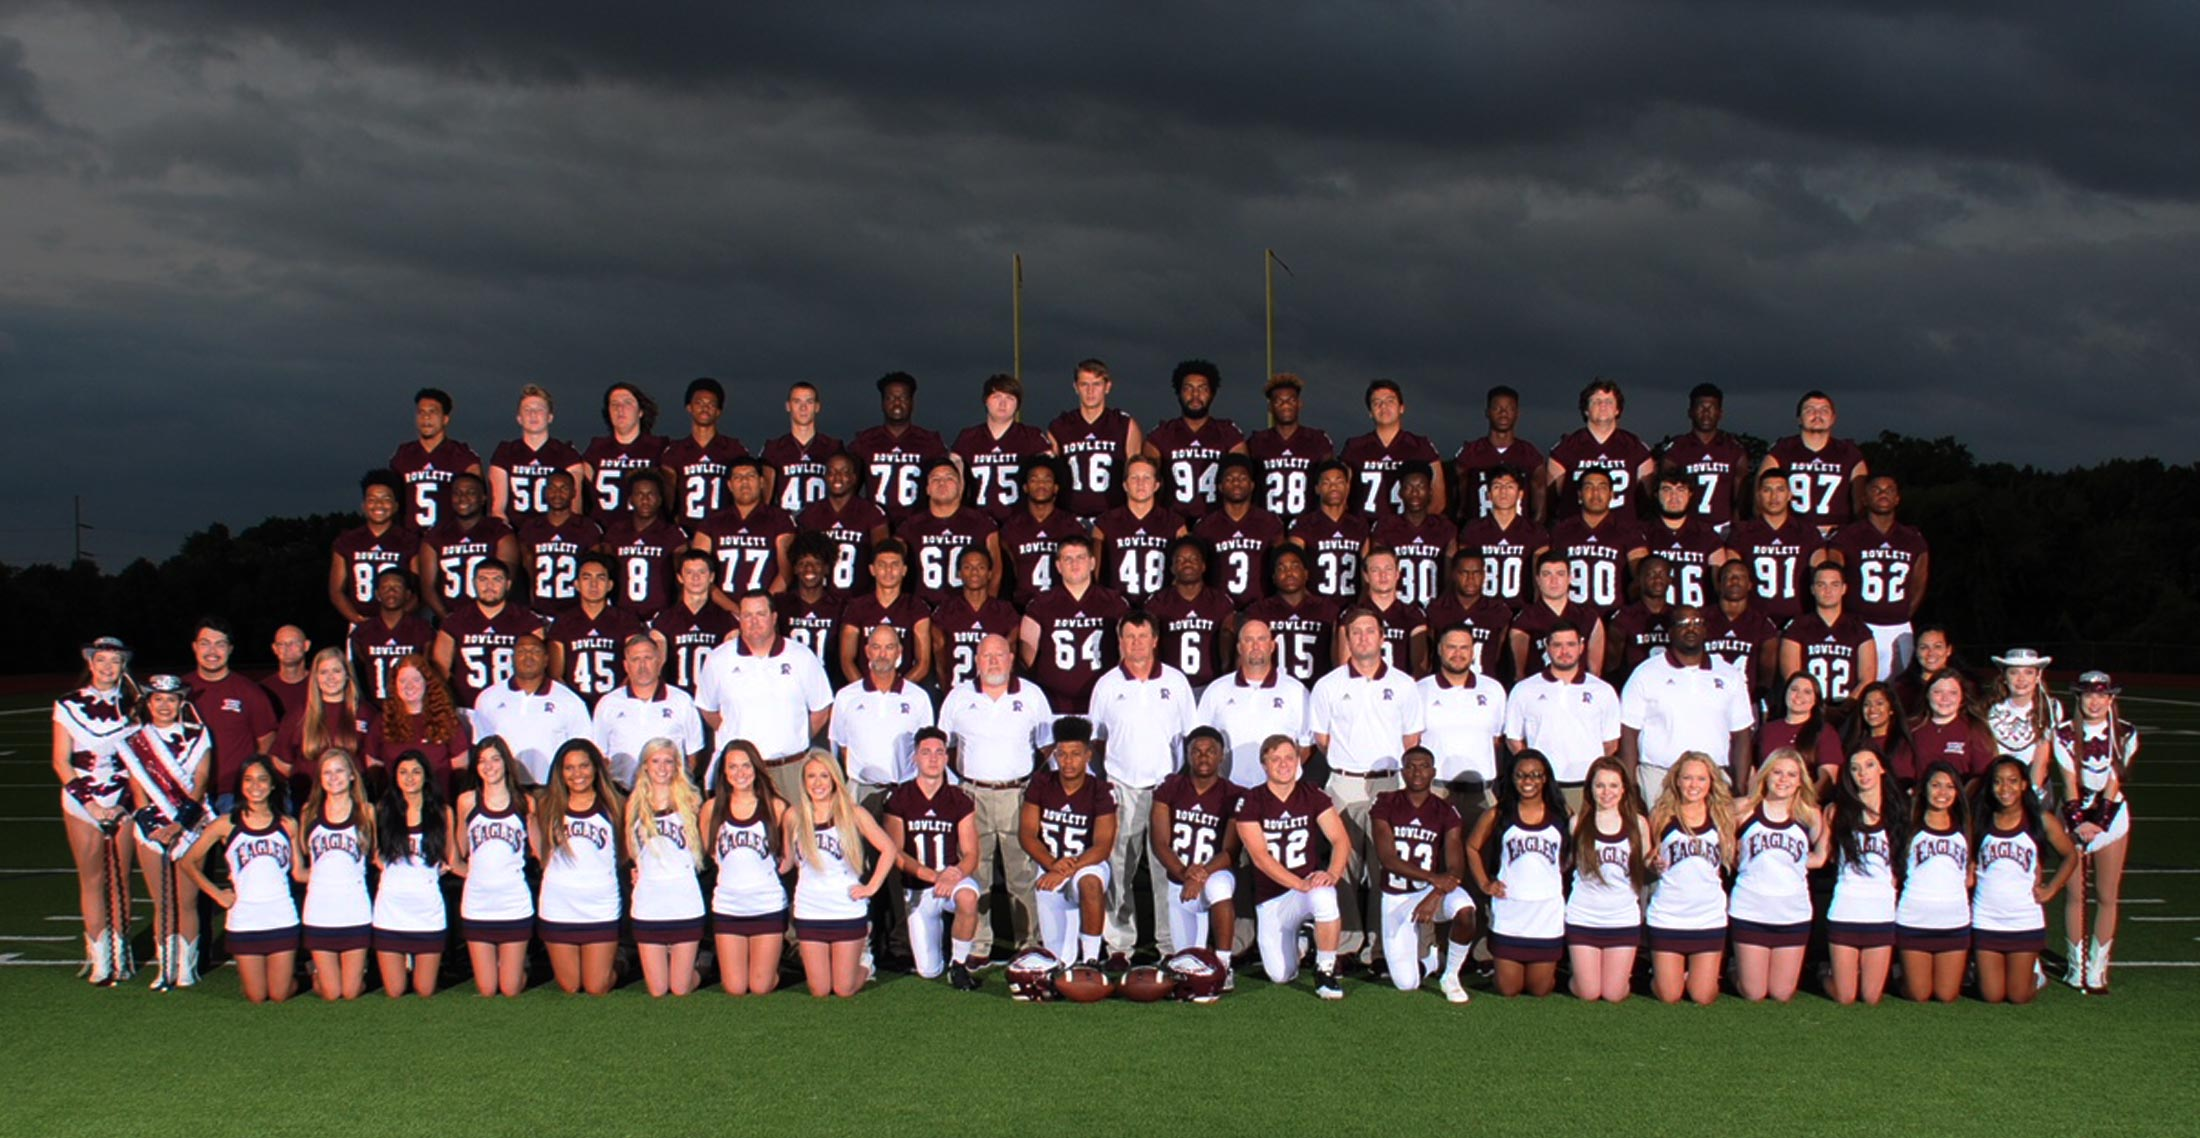 RHS EAGLES VARSITY FOOTBALL TEAM